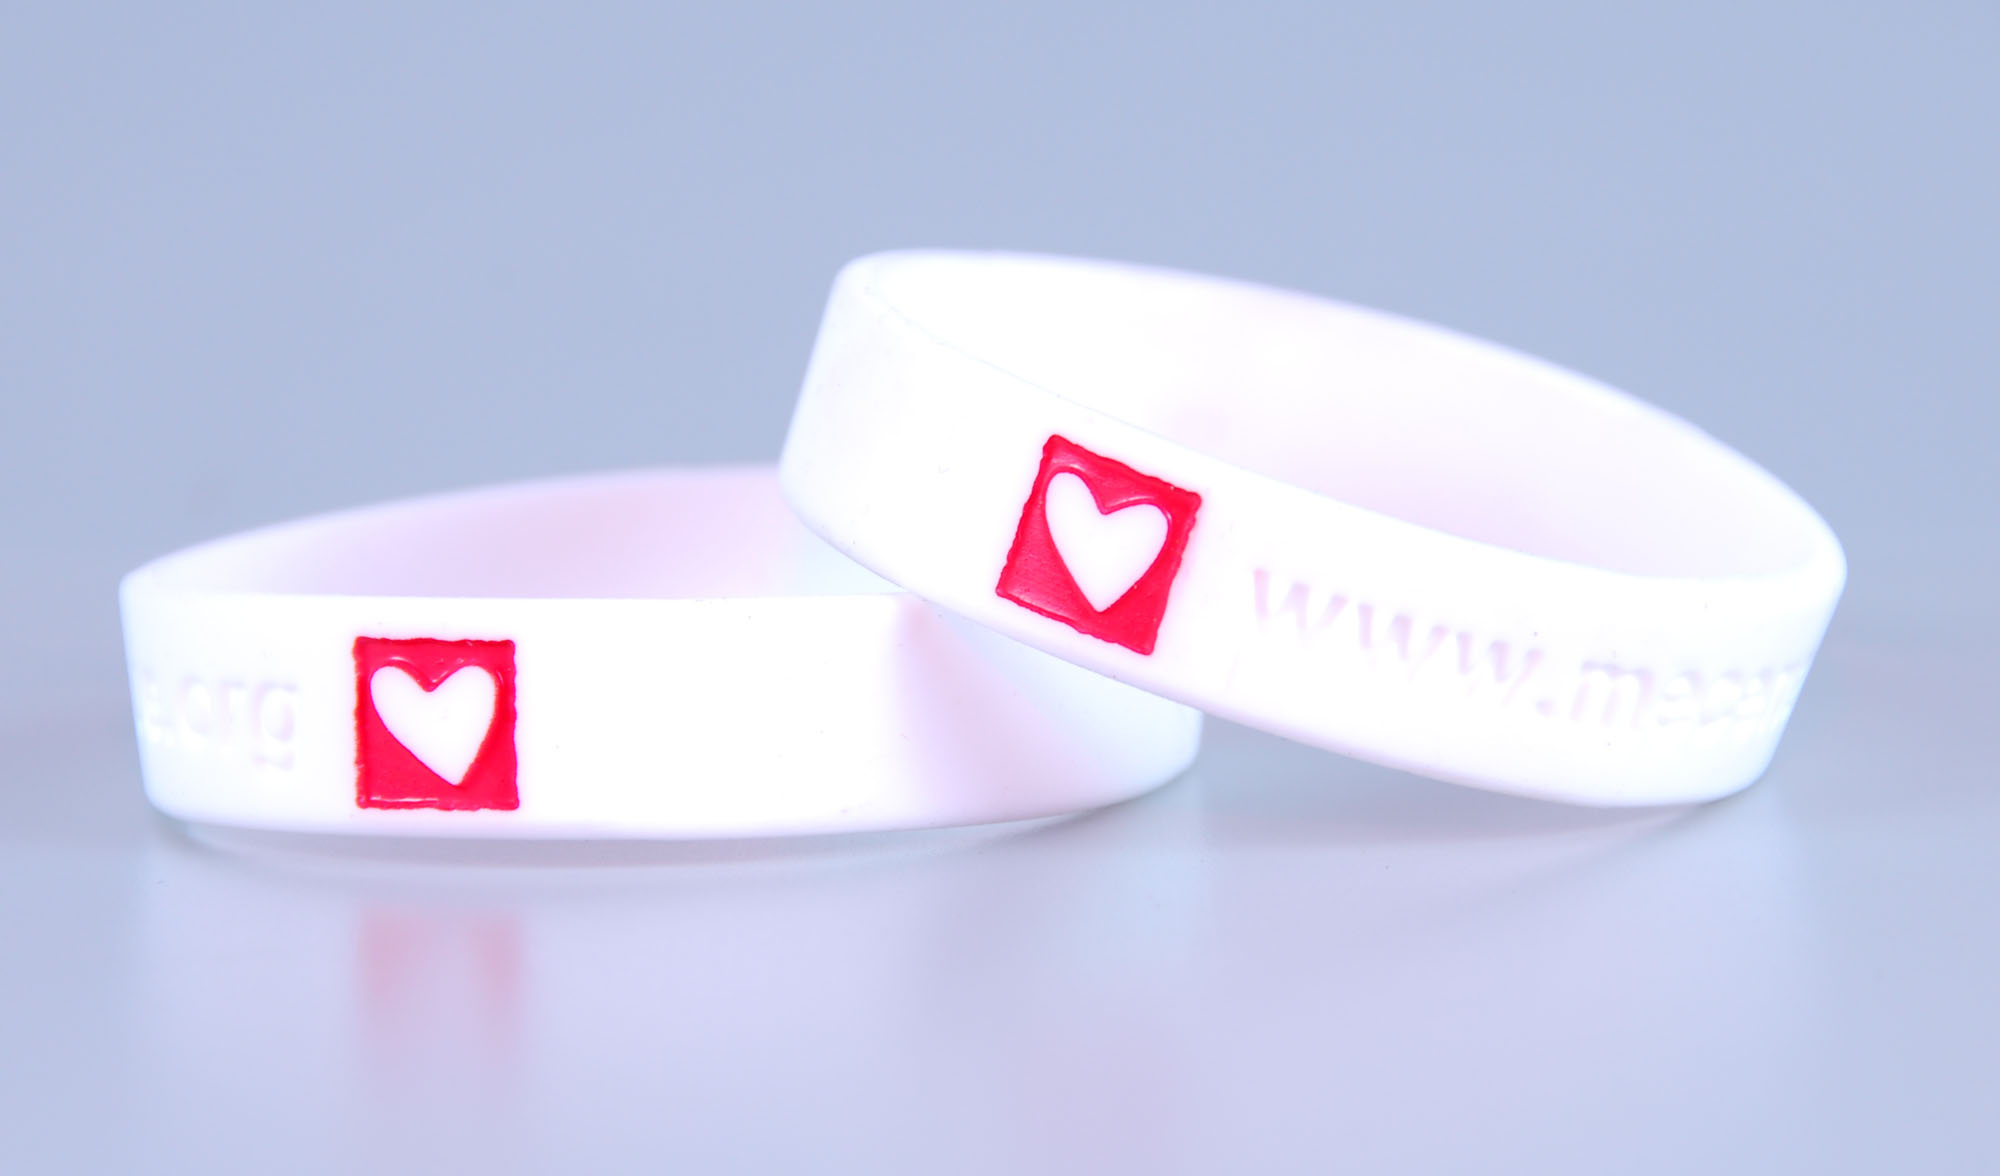 Customised rubber bracelets for money raising